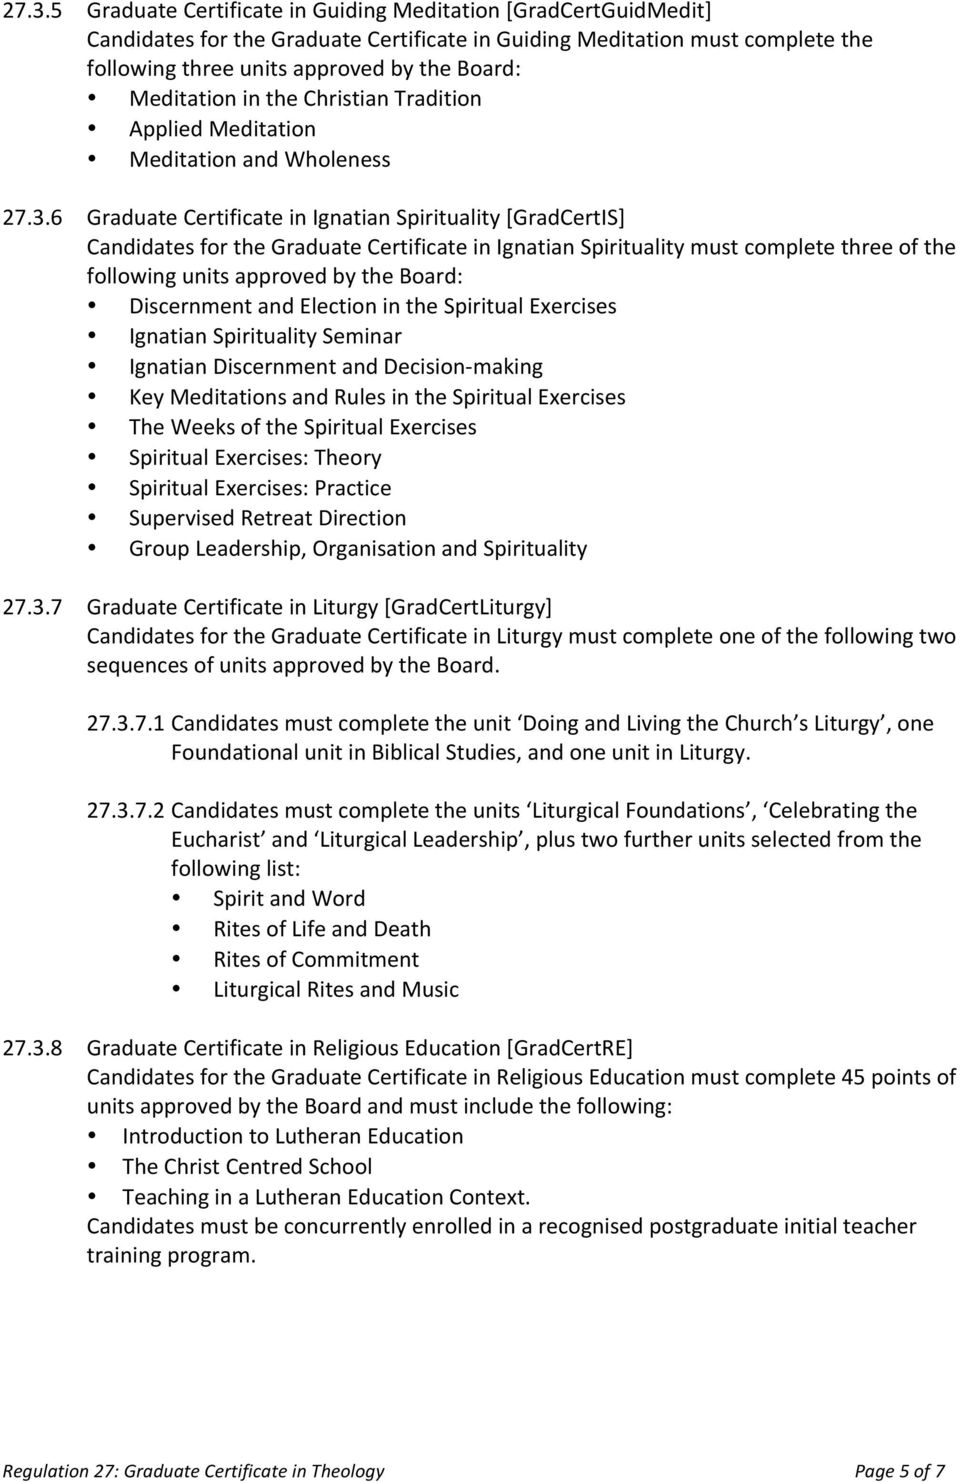 6 Graduate Certificate in Ignatian Spirituality [GradCertIS] Candidates for the Graduate Certificate in Ignatian Spirituality must complete three of the following units approved by the Board: